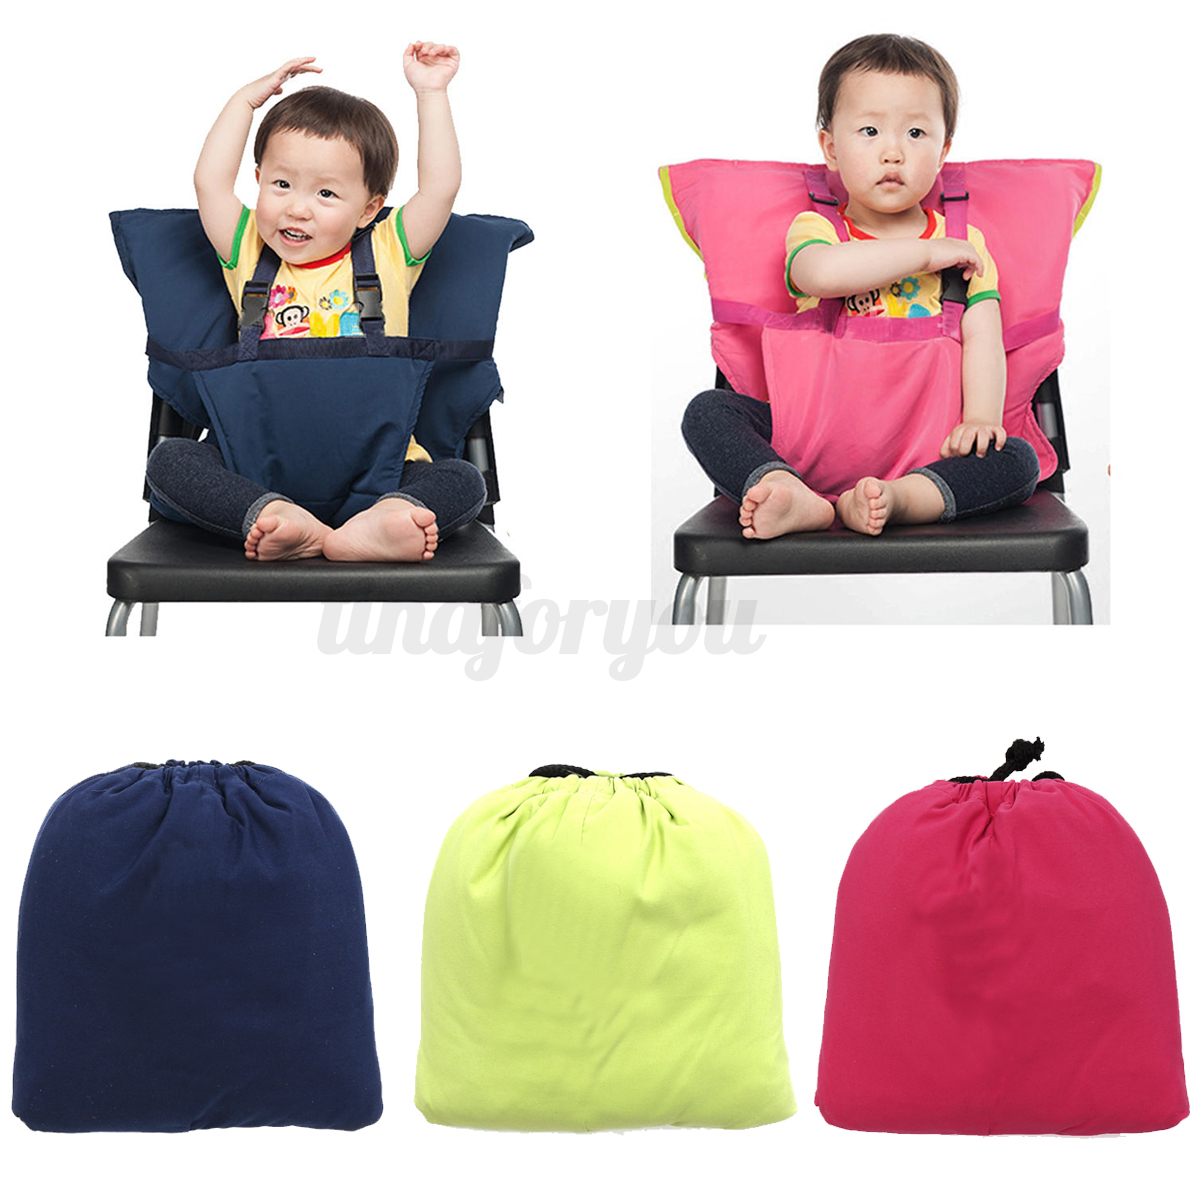 Portable Baby Infant Kids Seat High Chair Harness Seat